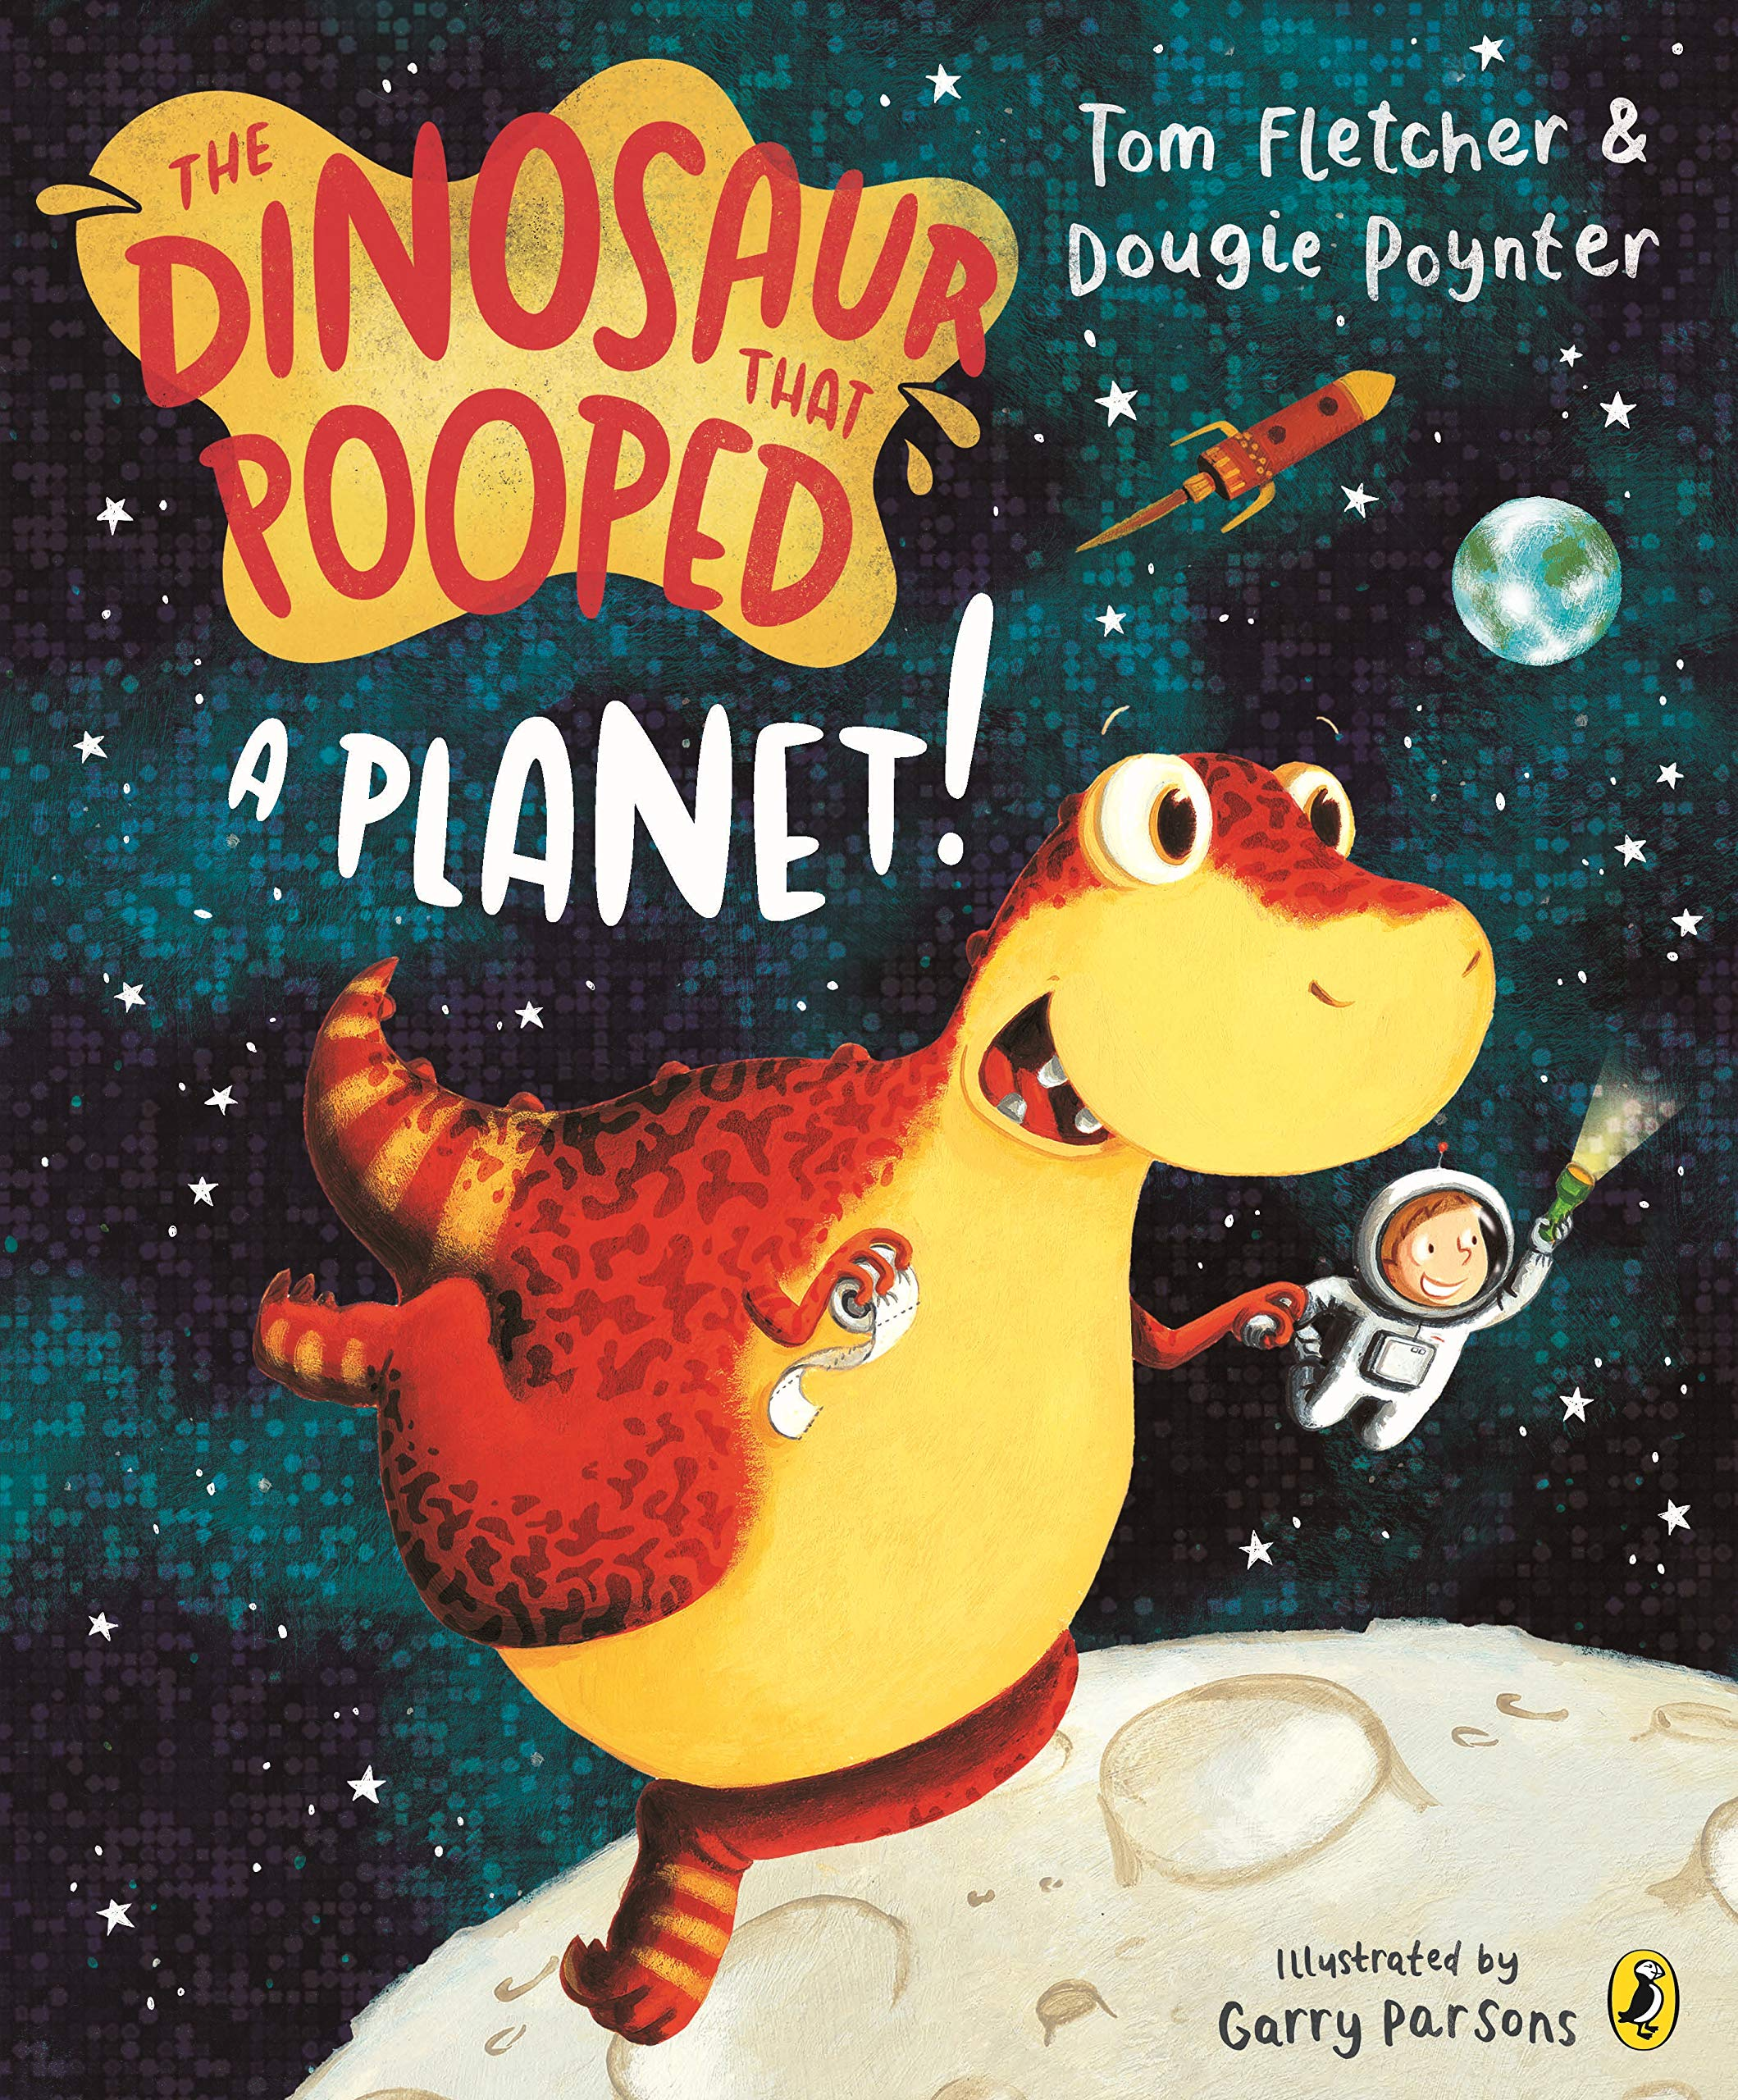 The Dinosaur That Pooped A Planet!: Amazon.co.uk: Fletcher, Tom, Poynter,  Dougie, Parsons, Garry: Books